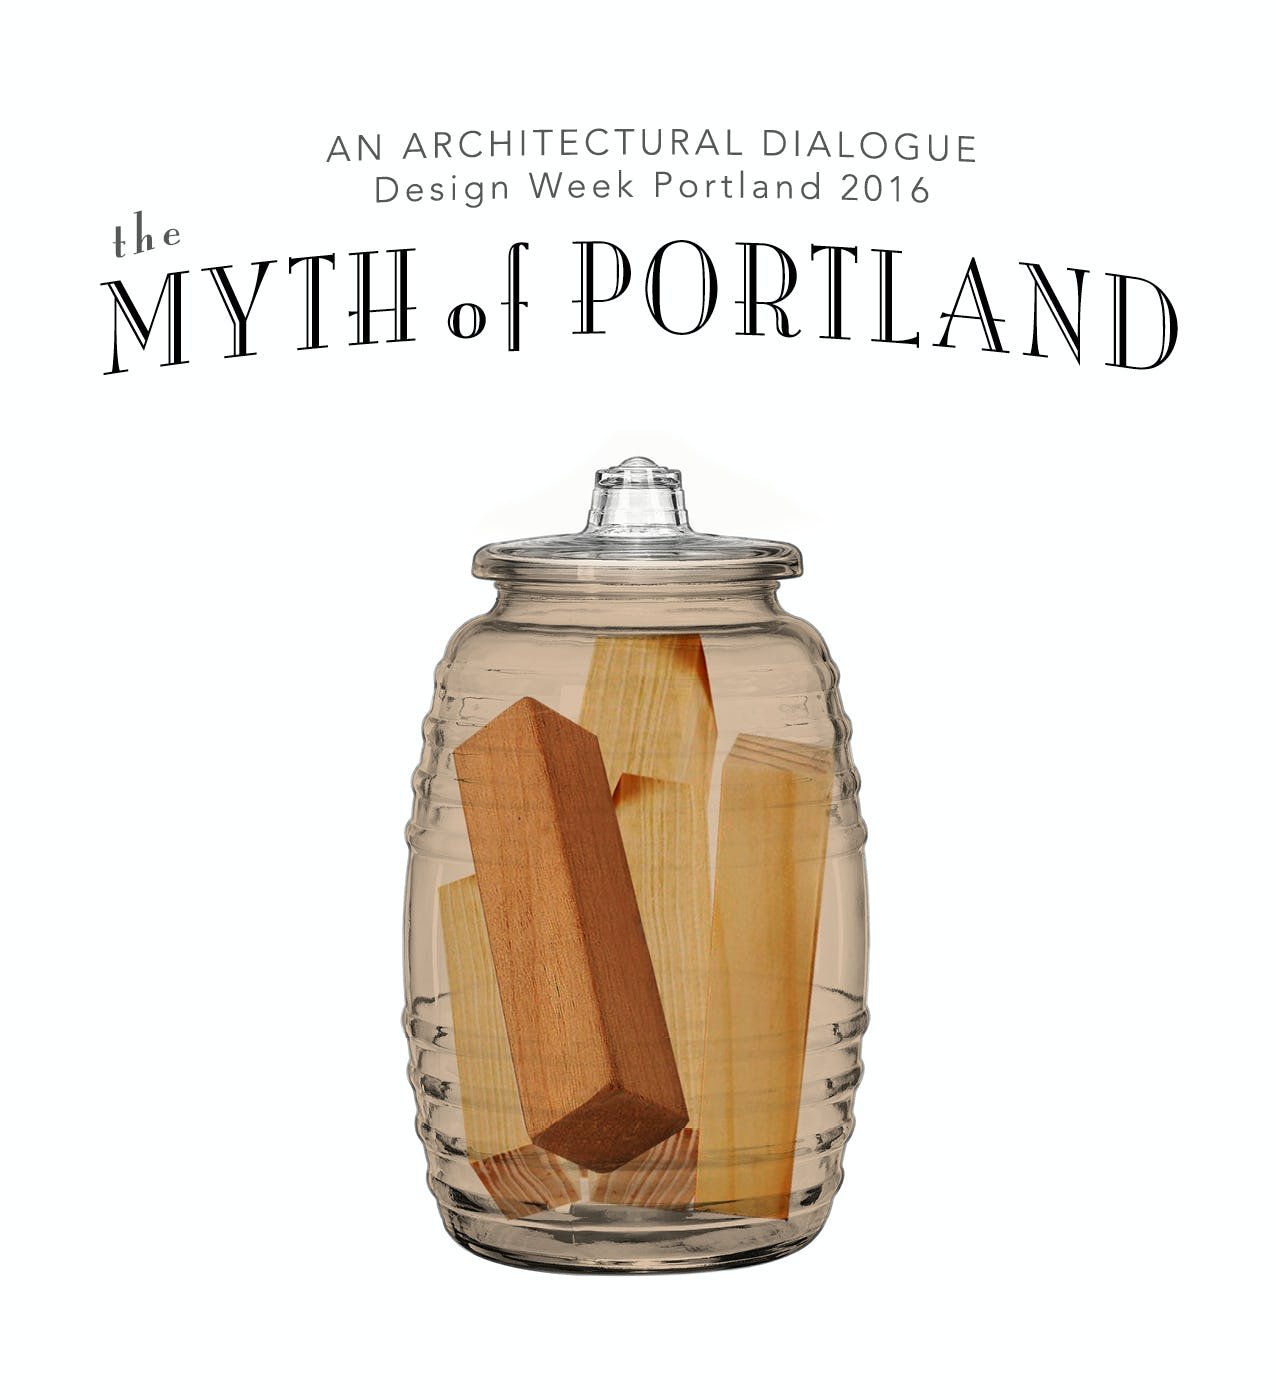 The myth of portland